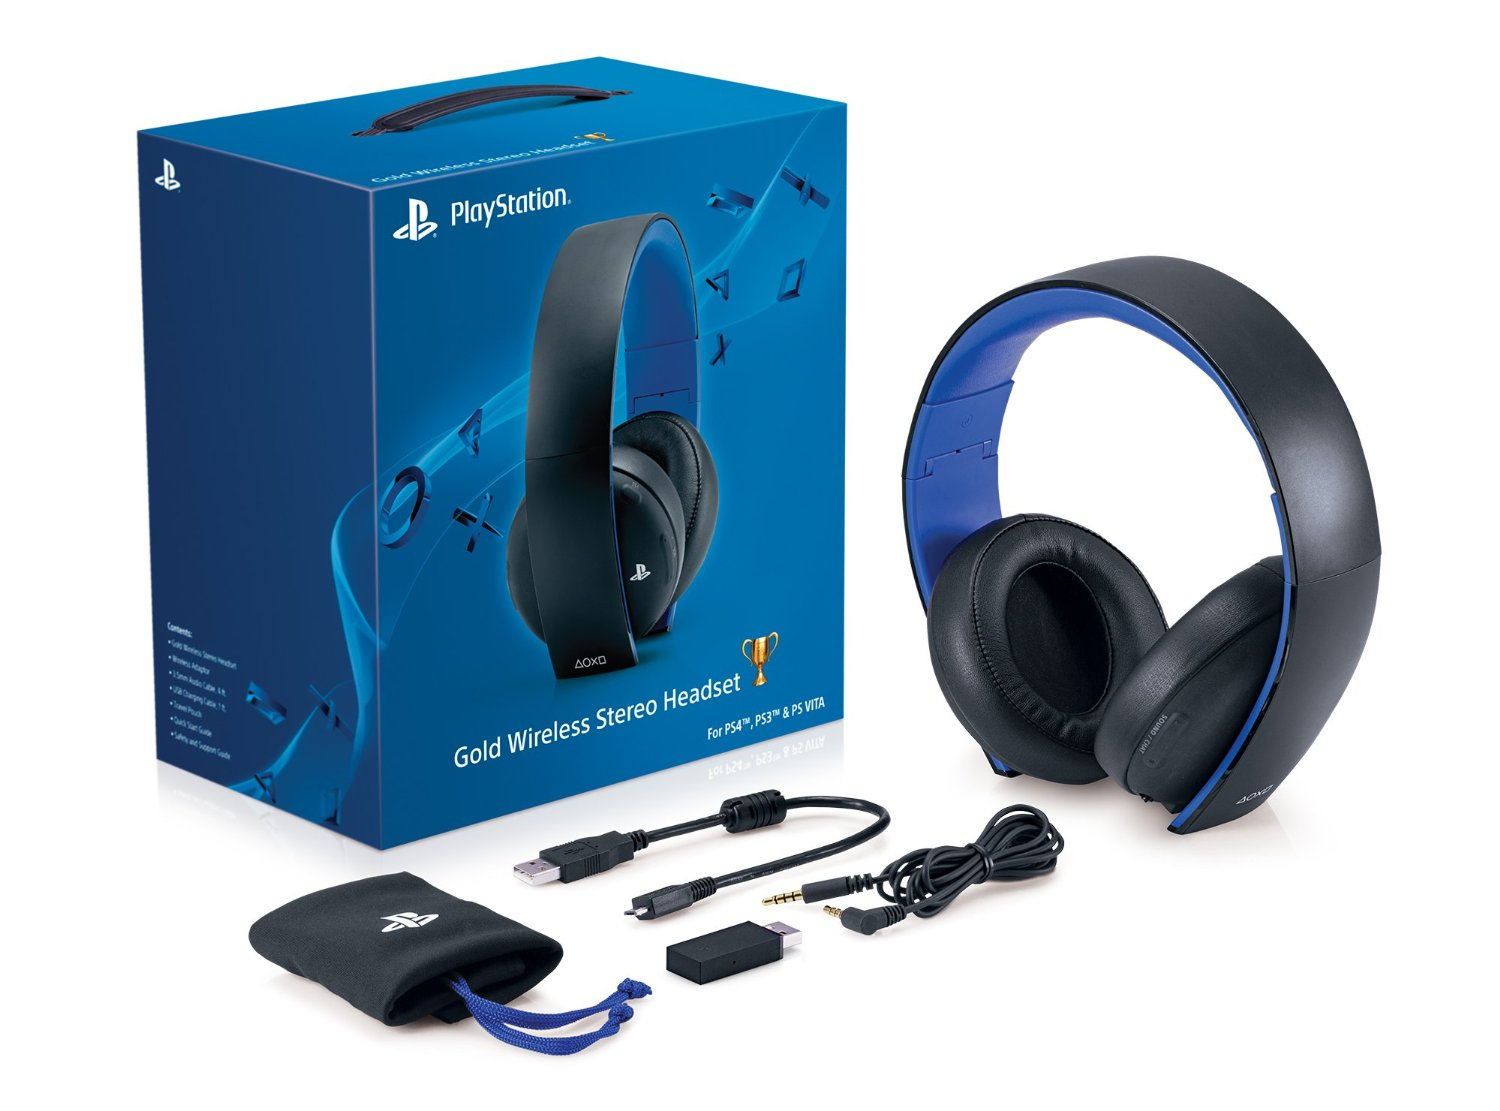 A Gaming Headset ps4